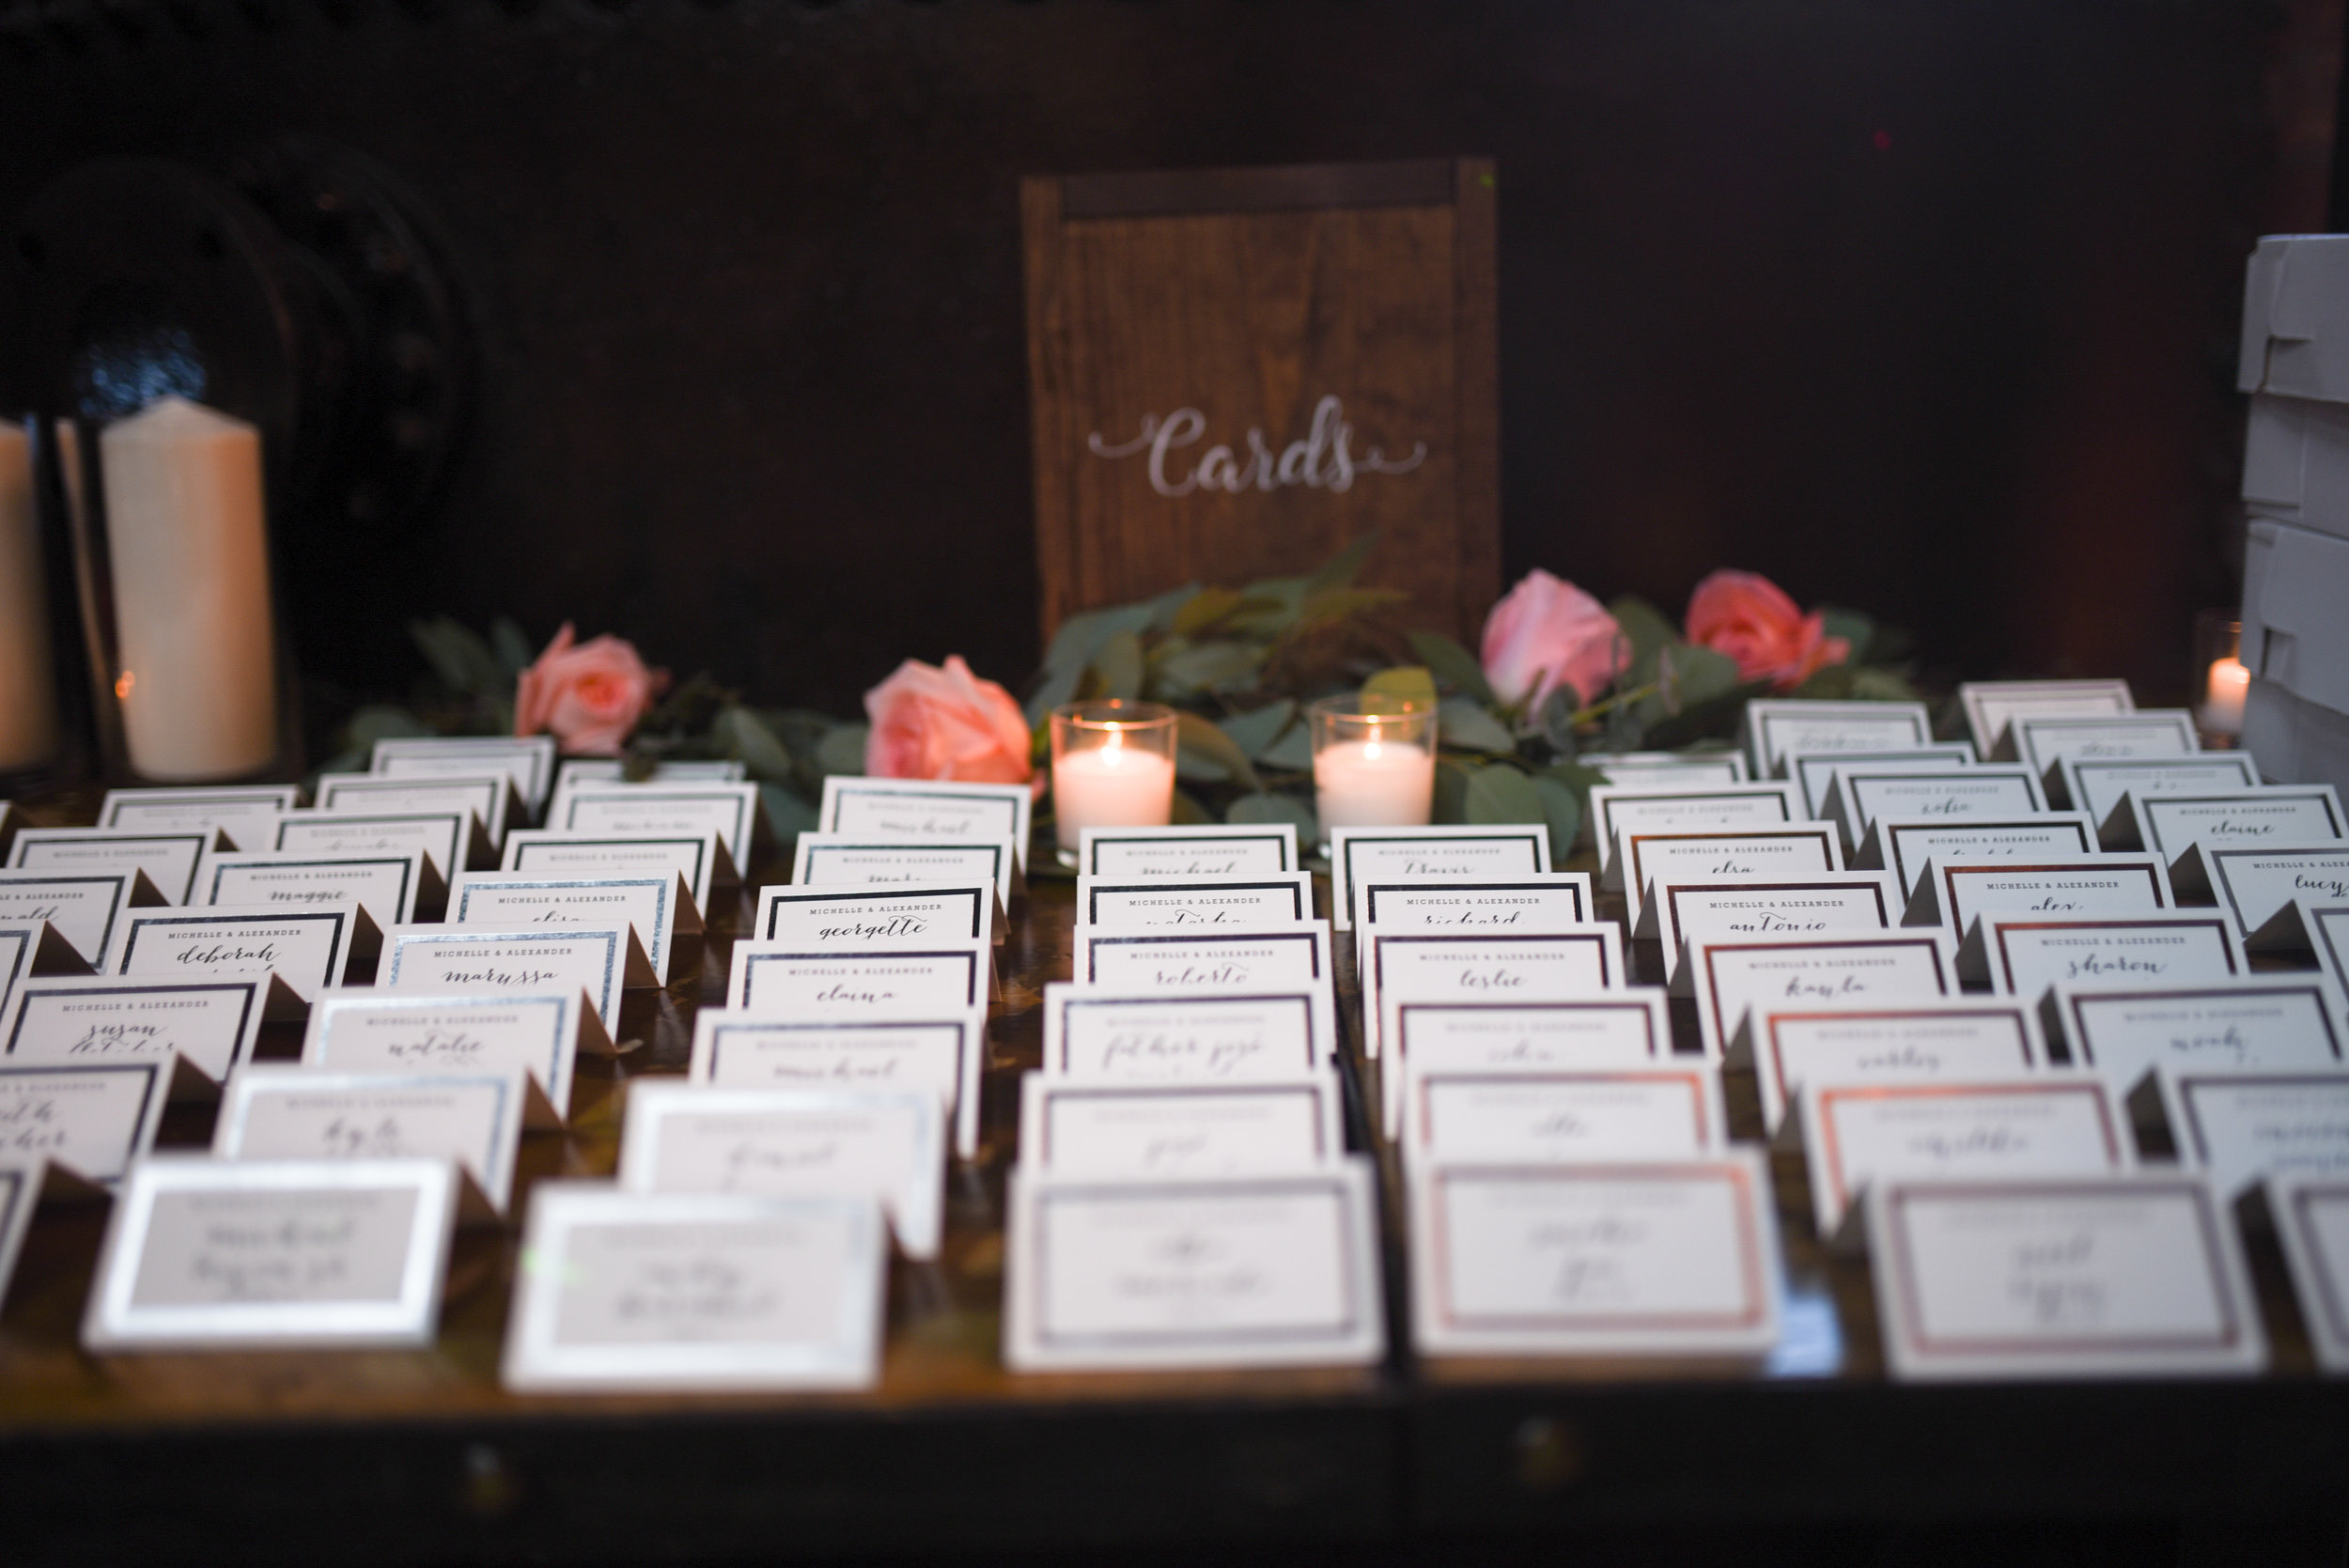 Eucalyptus and roses accent these lovely place cards